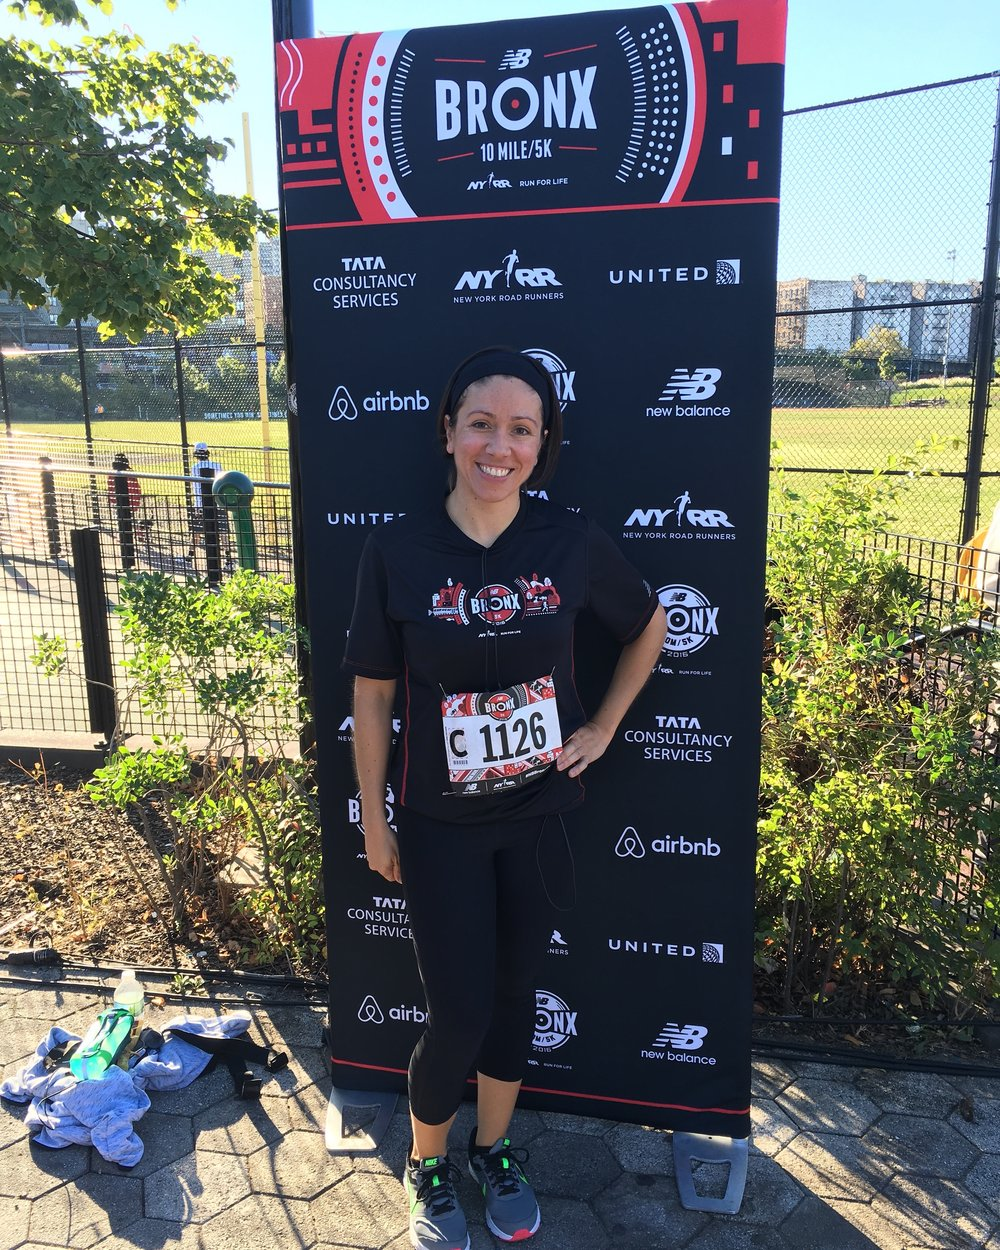 Back for more: Alyssa finished a 5K race at the 2016 New Balance Bronx 10 Mile.